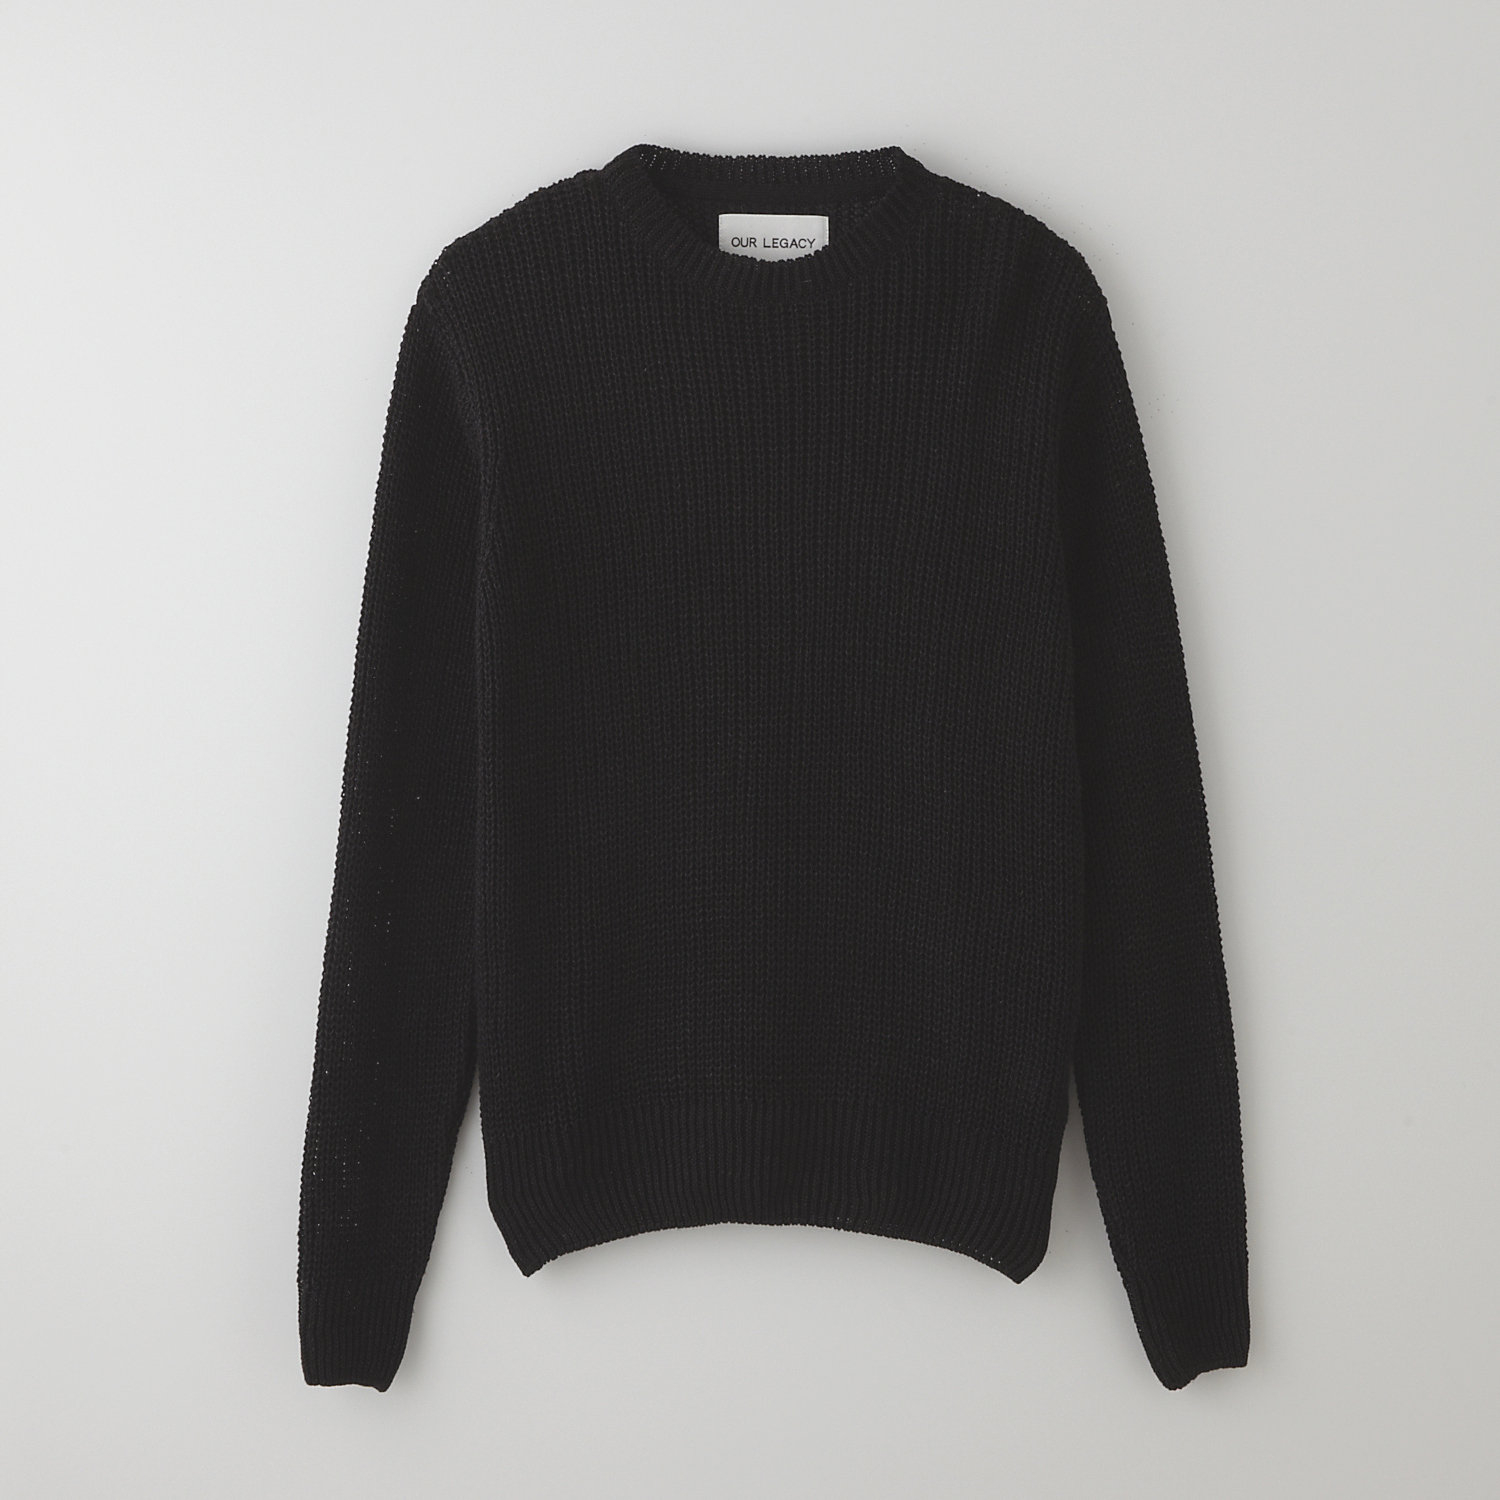 Black friday 2018 cashmere sweaters deals